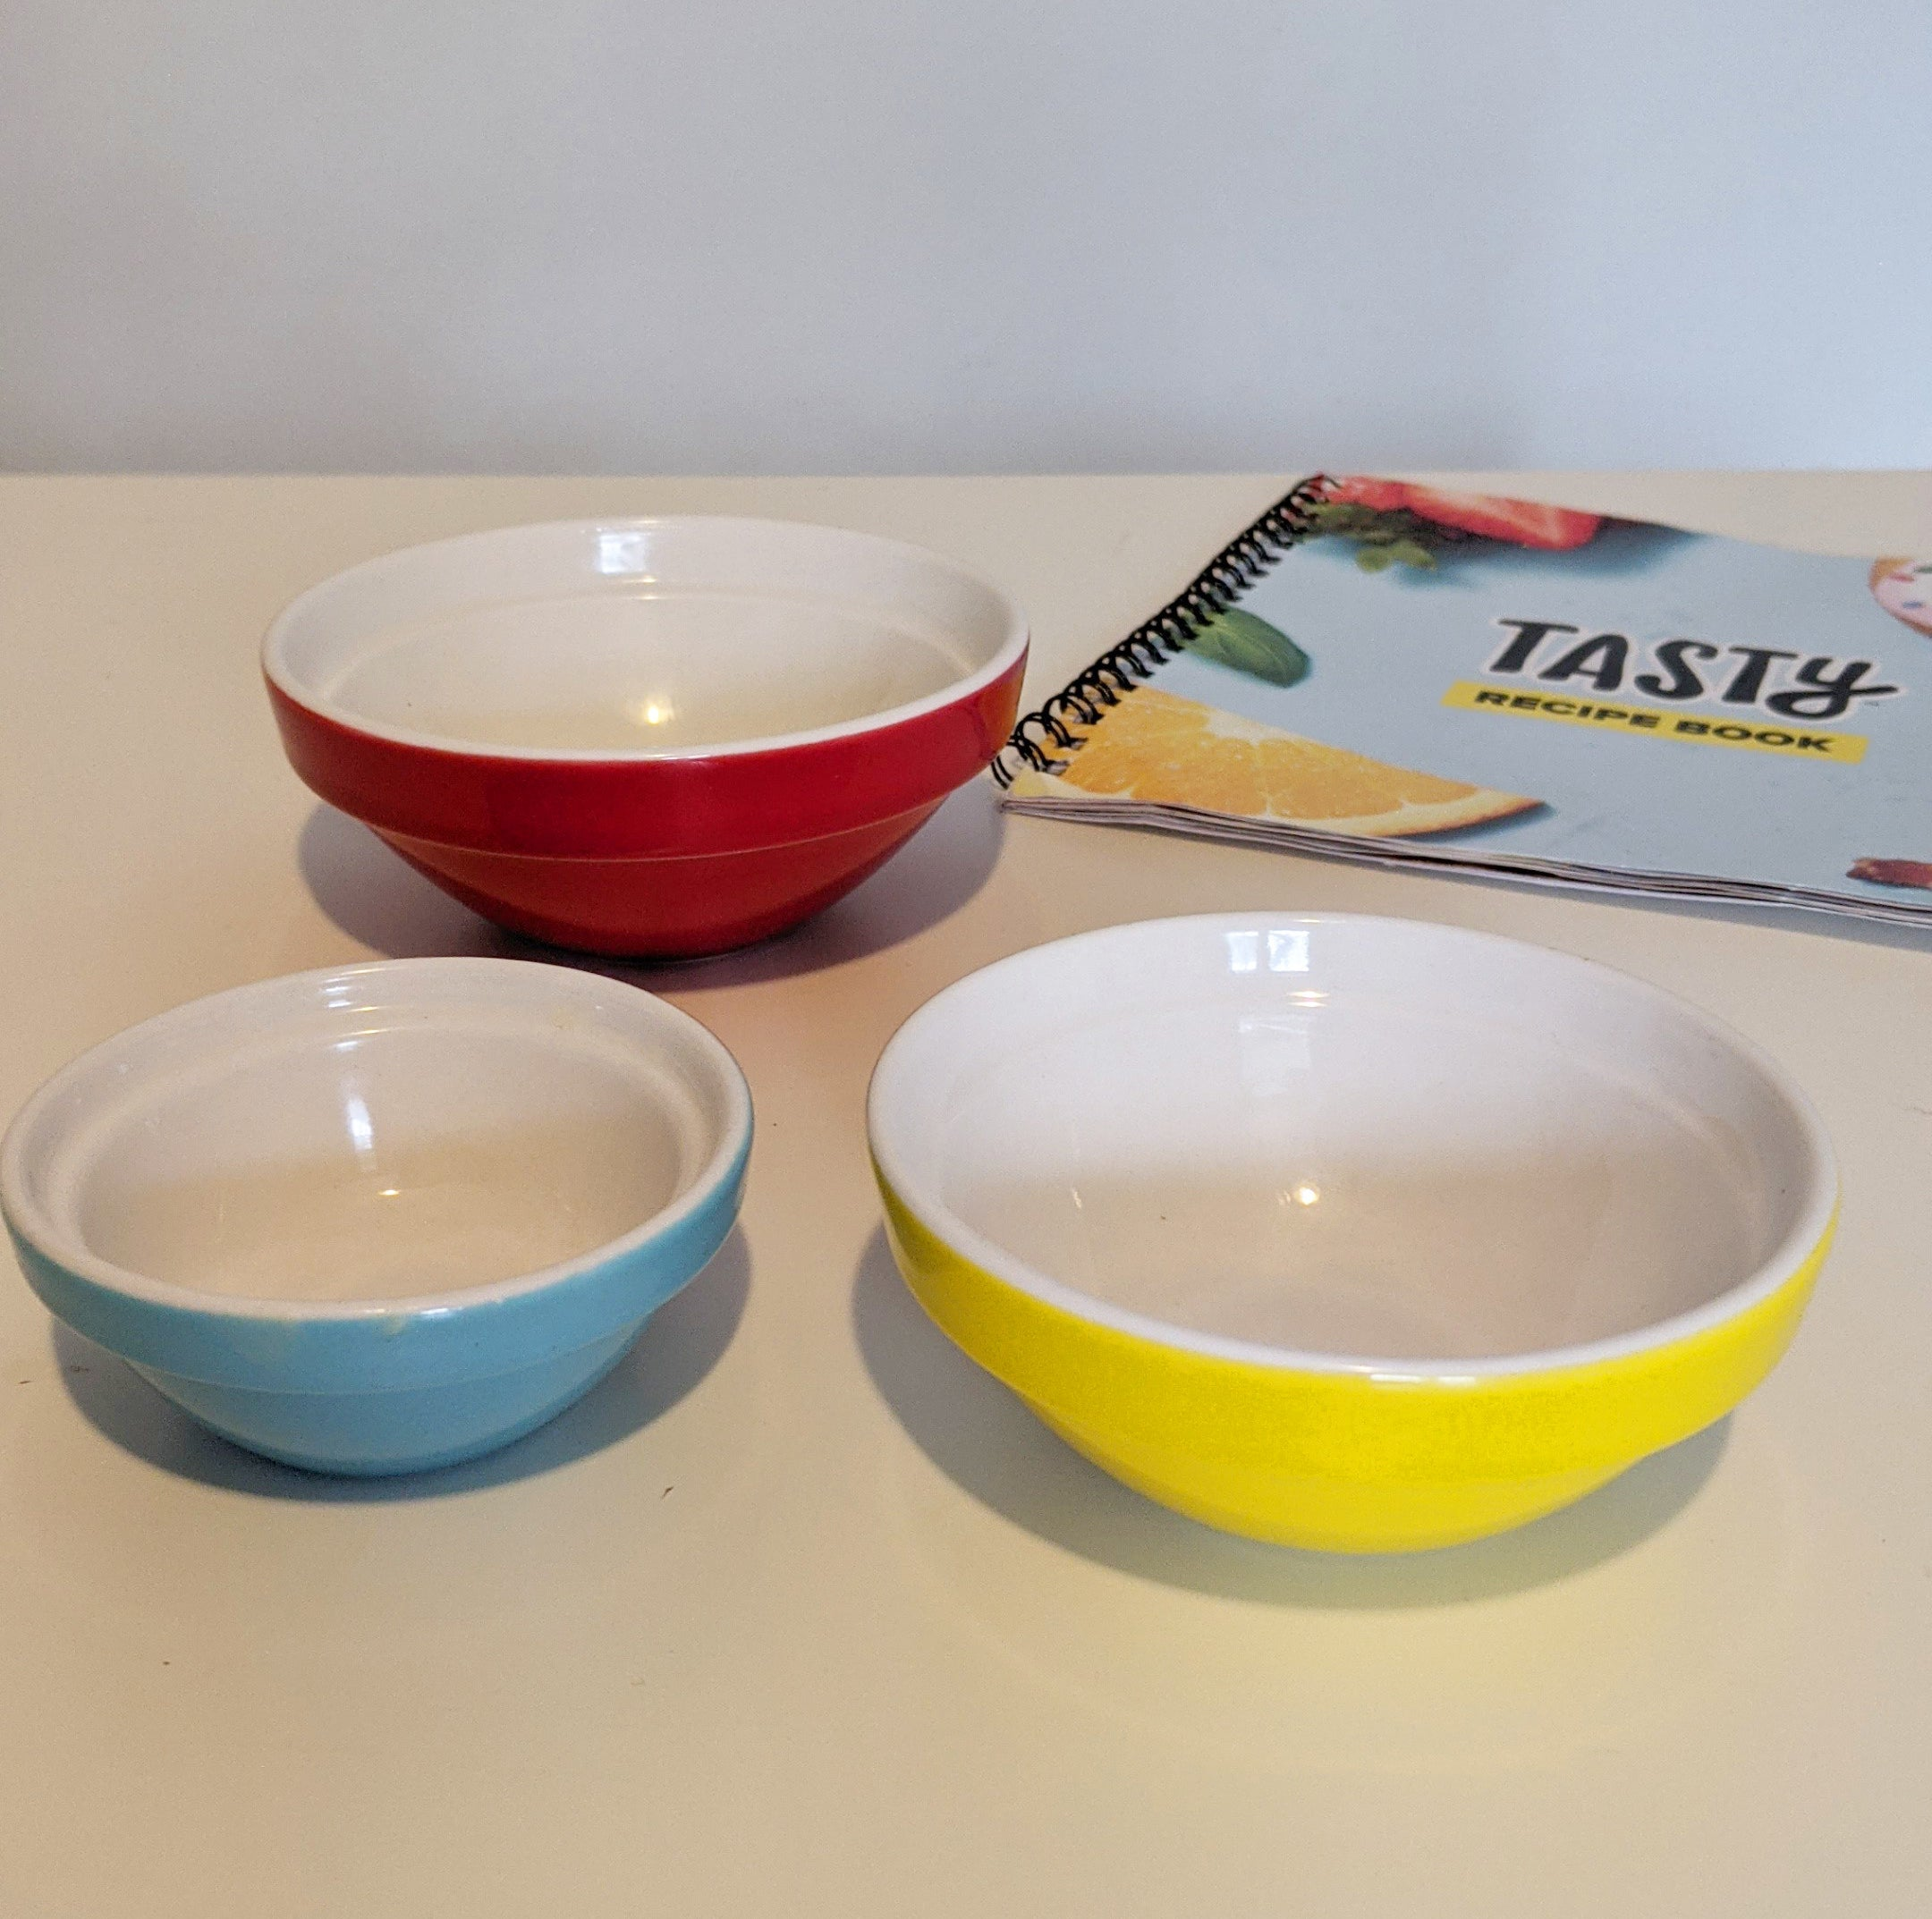 Three pinch bowls of different sizes on a table with a recipe book